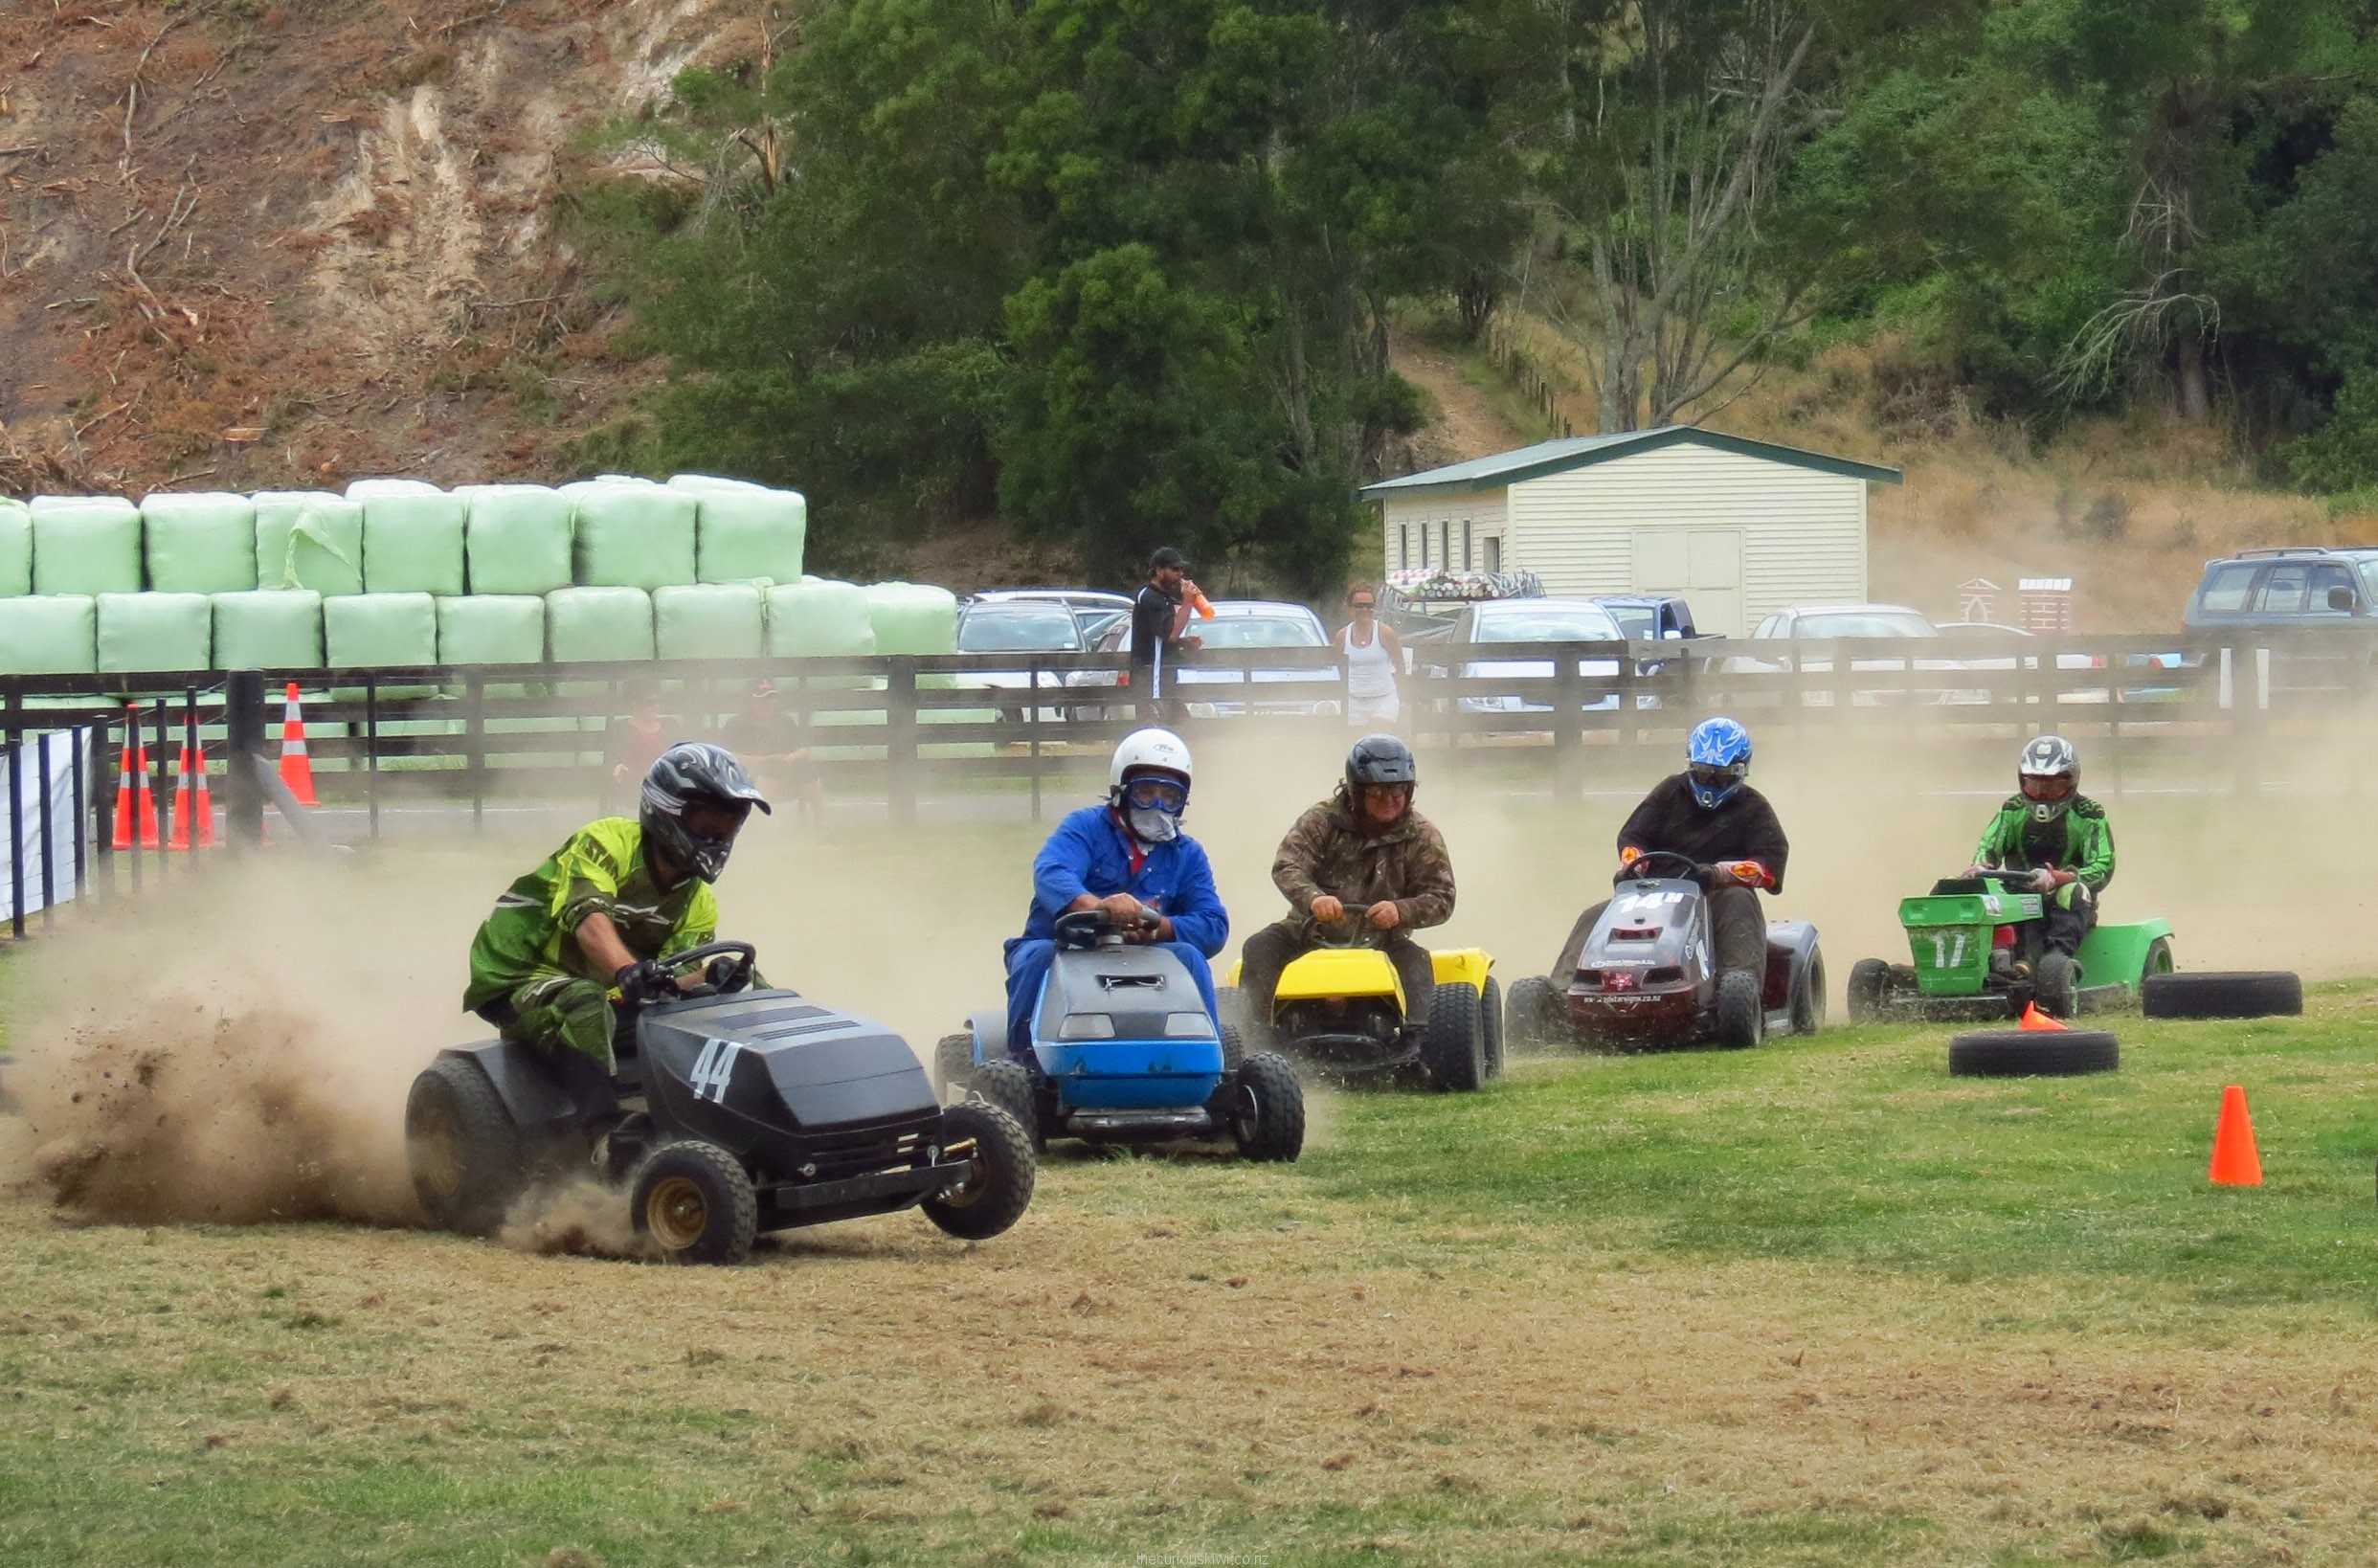 Ride-on lawn mower race at Rotorua A&P Show